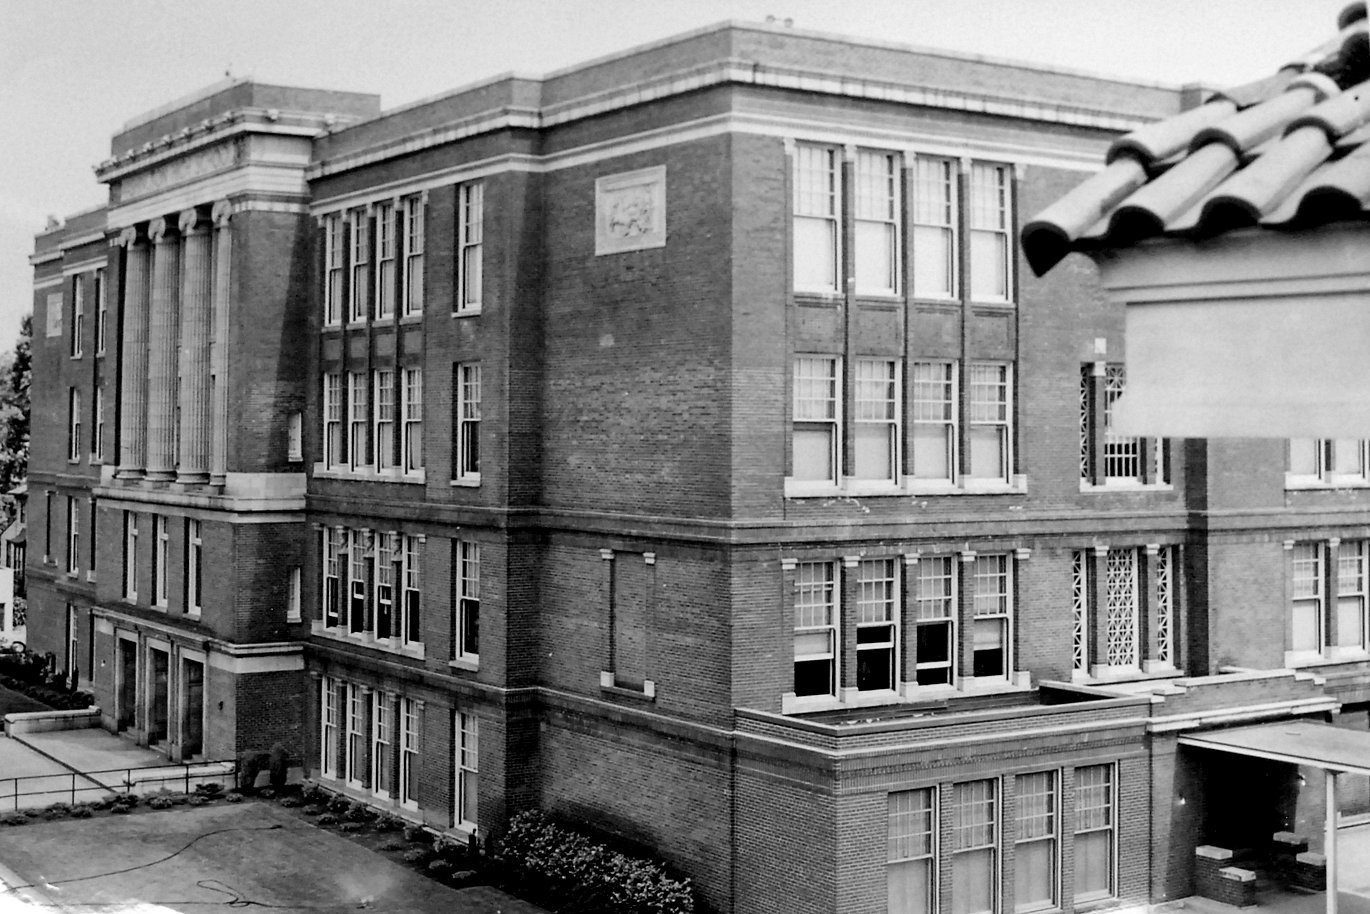 washington high school exterior historic B&W photo Portland Oregon PDX restoration redevelopment